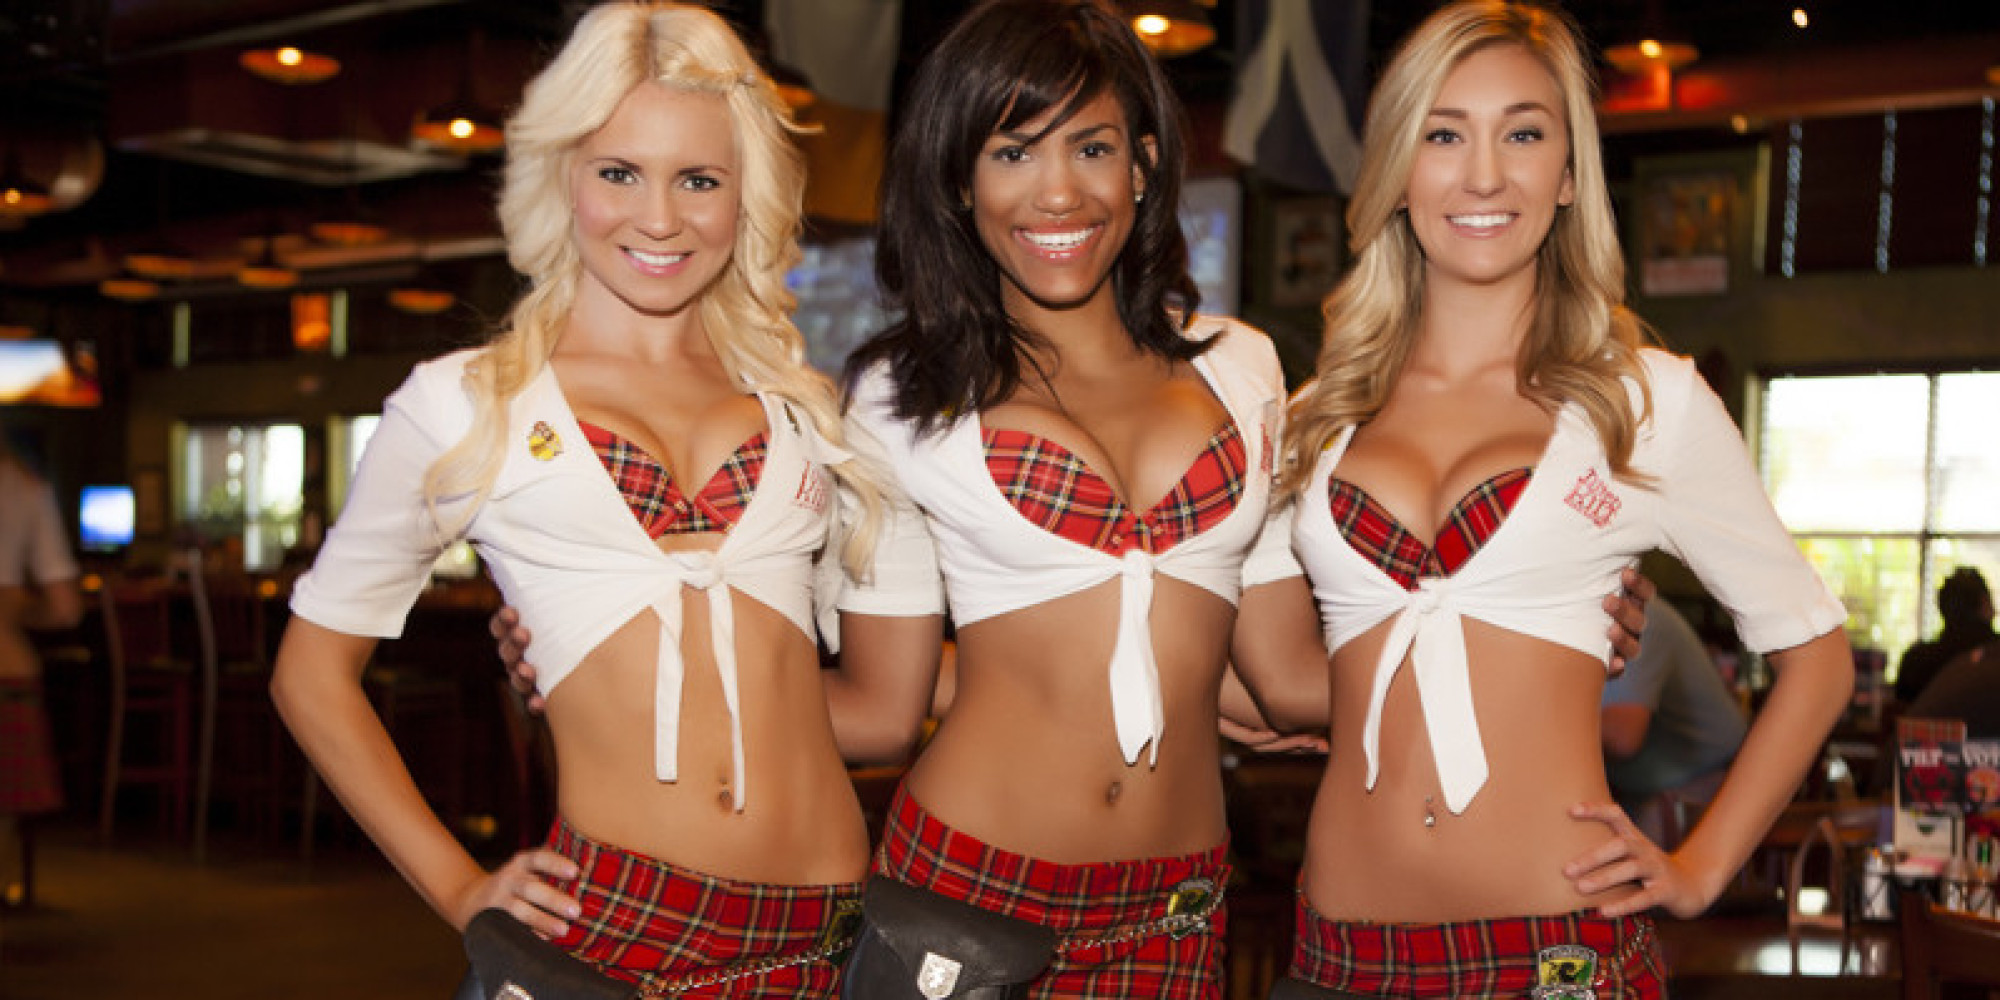 breastaurants booming as the restaurant industry struggles | huffpost